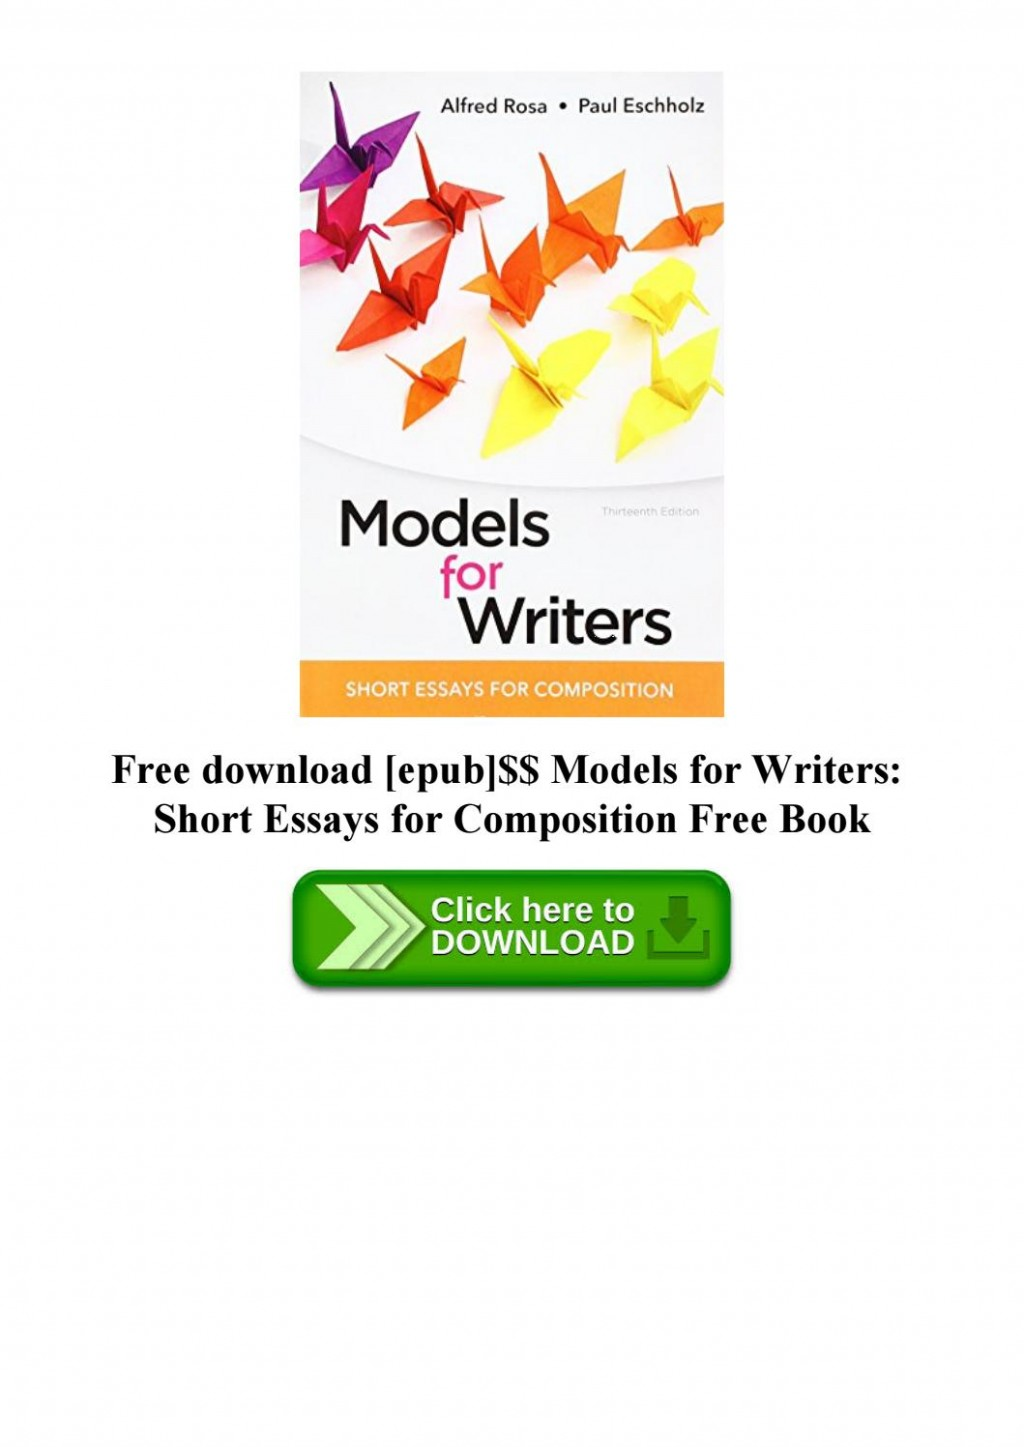 017 Page 1 Essay Example Models For Writers Short Essays Singular Composition 12th Edition Pdf 13th Large